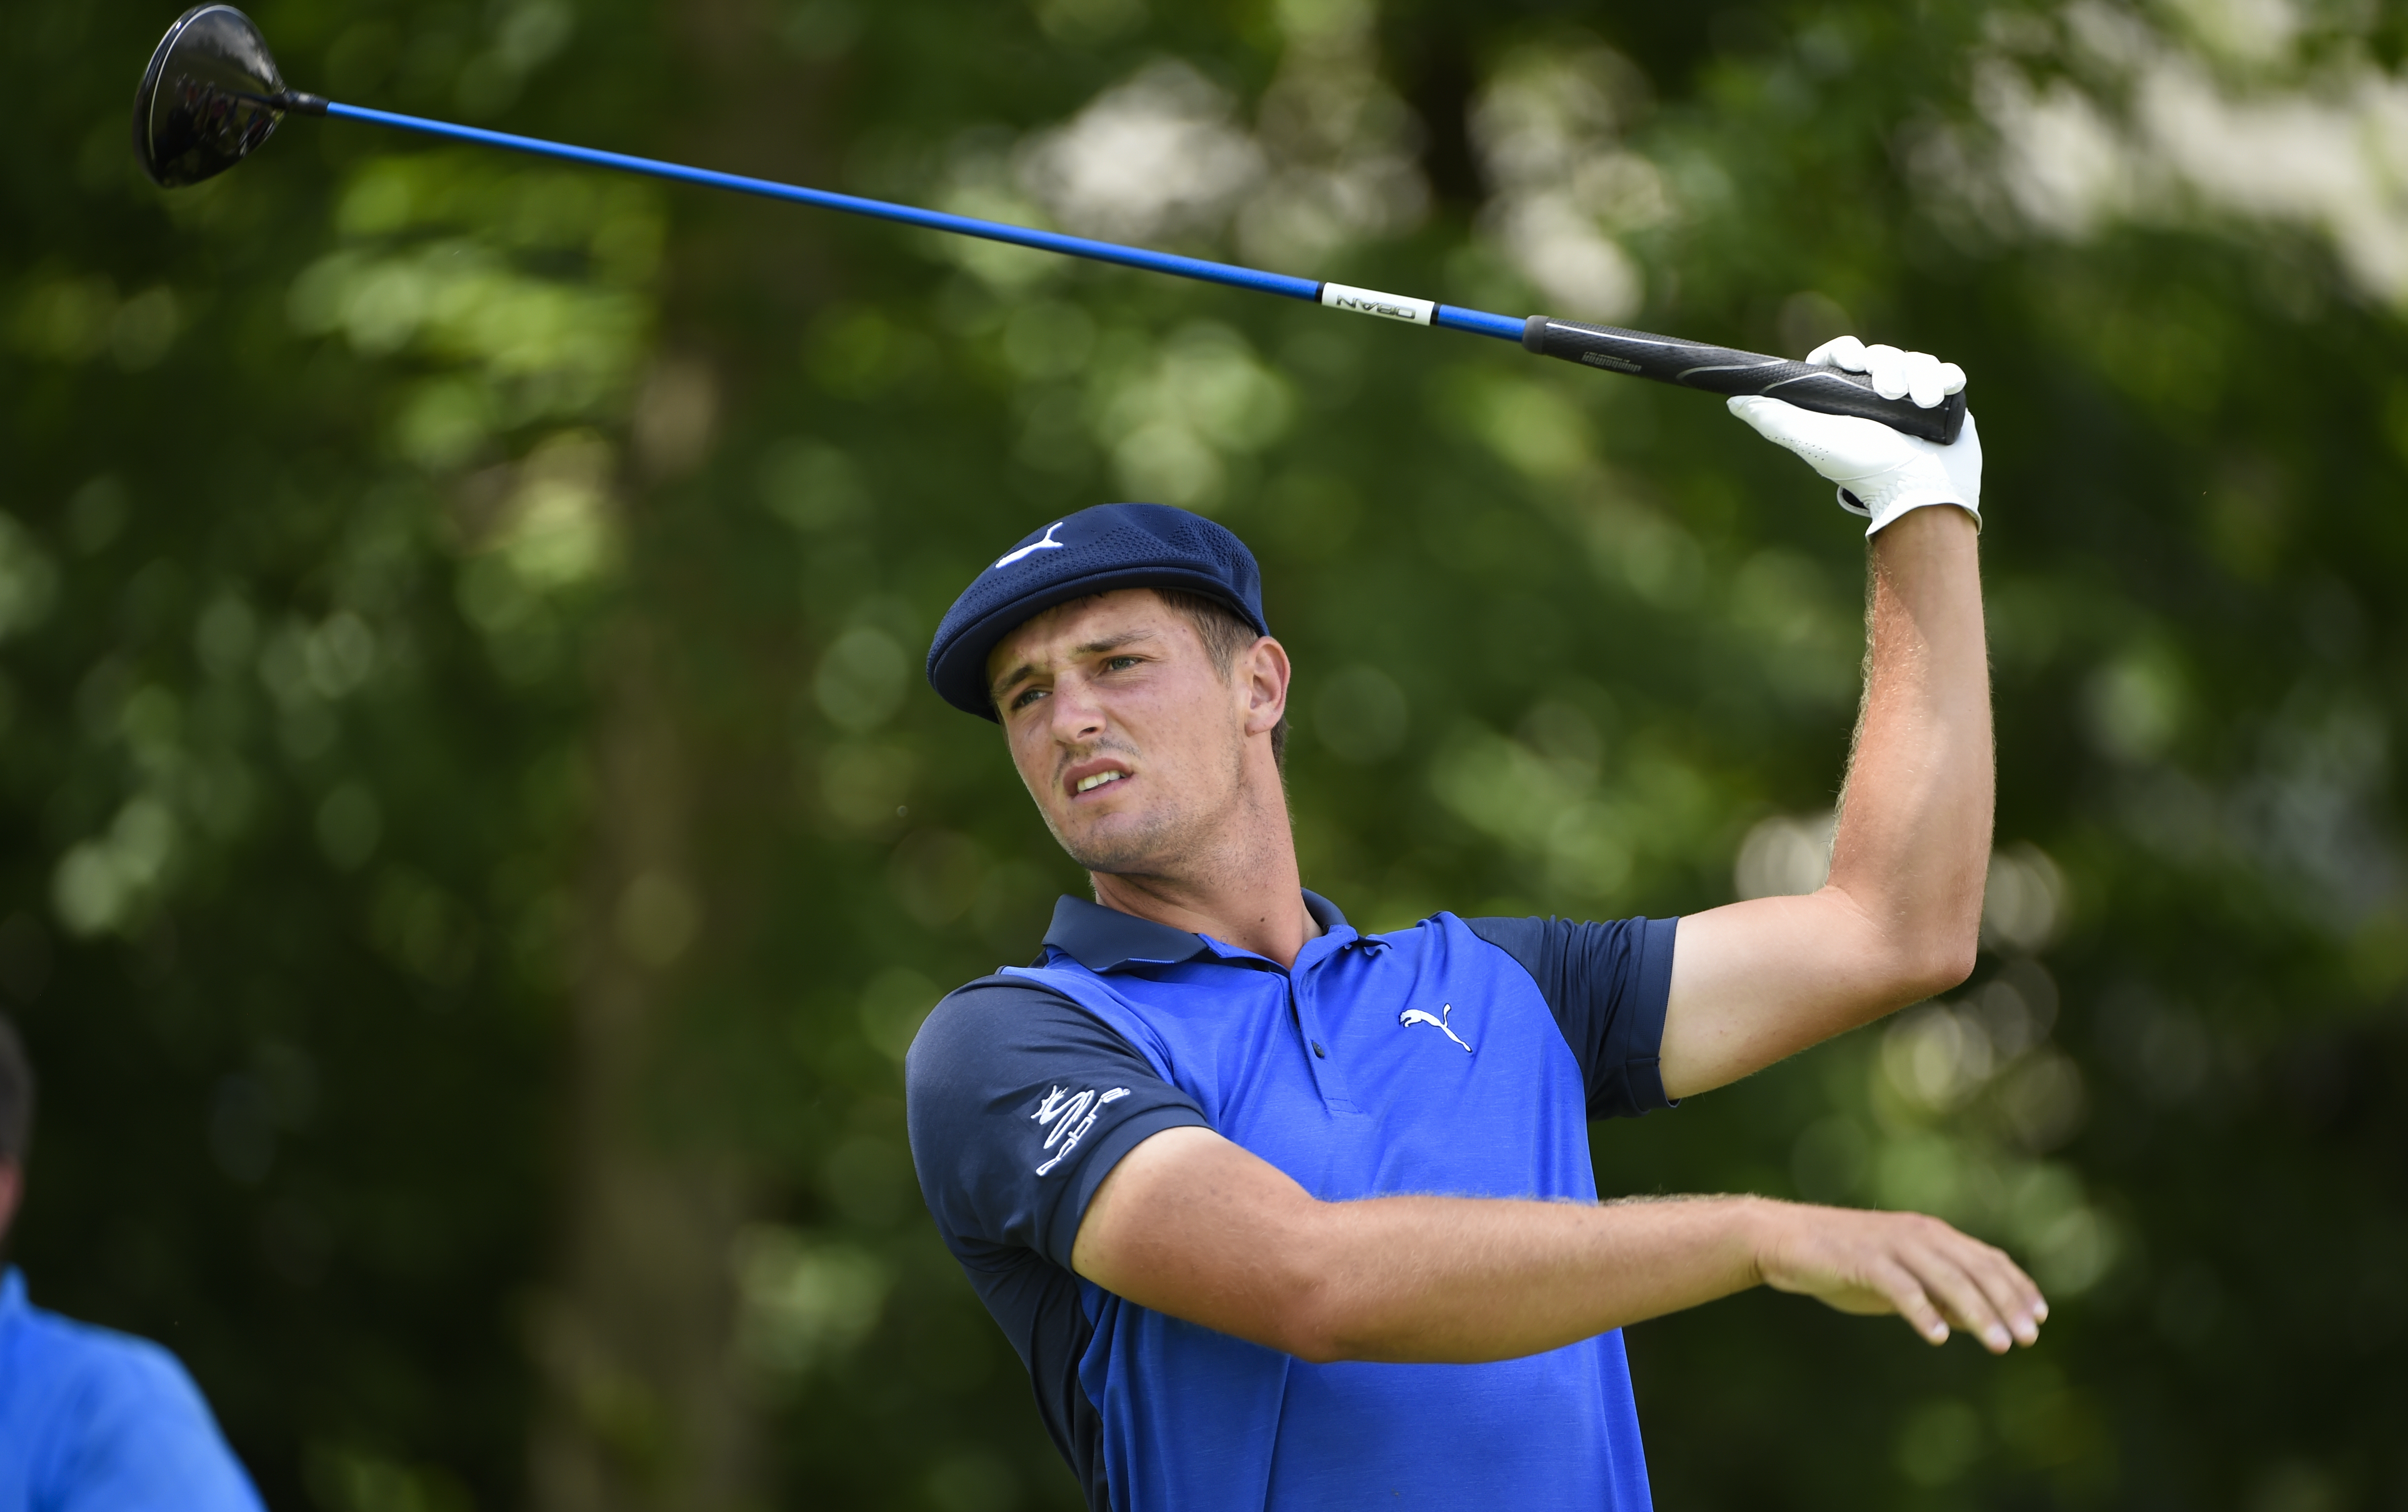 Bryson DeChambeau started his professional career off quickly with a T4 finish, but missed his next four cuts.